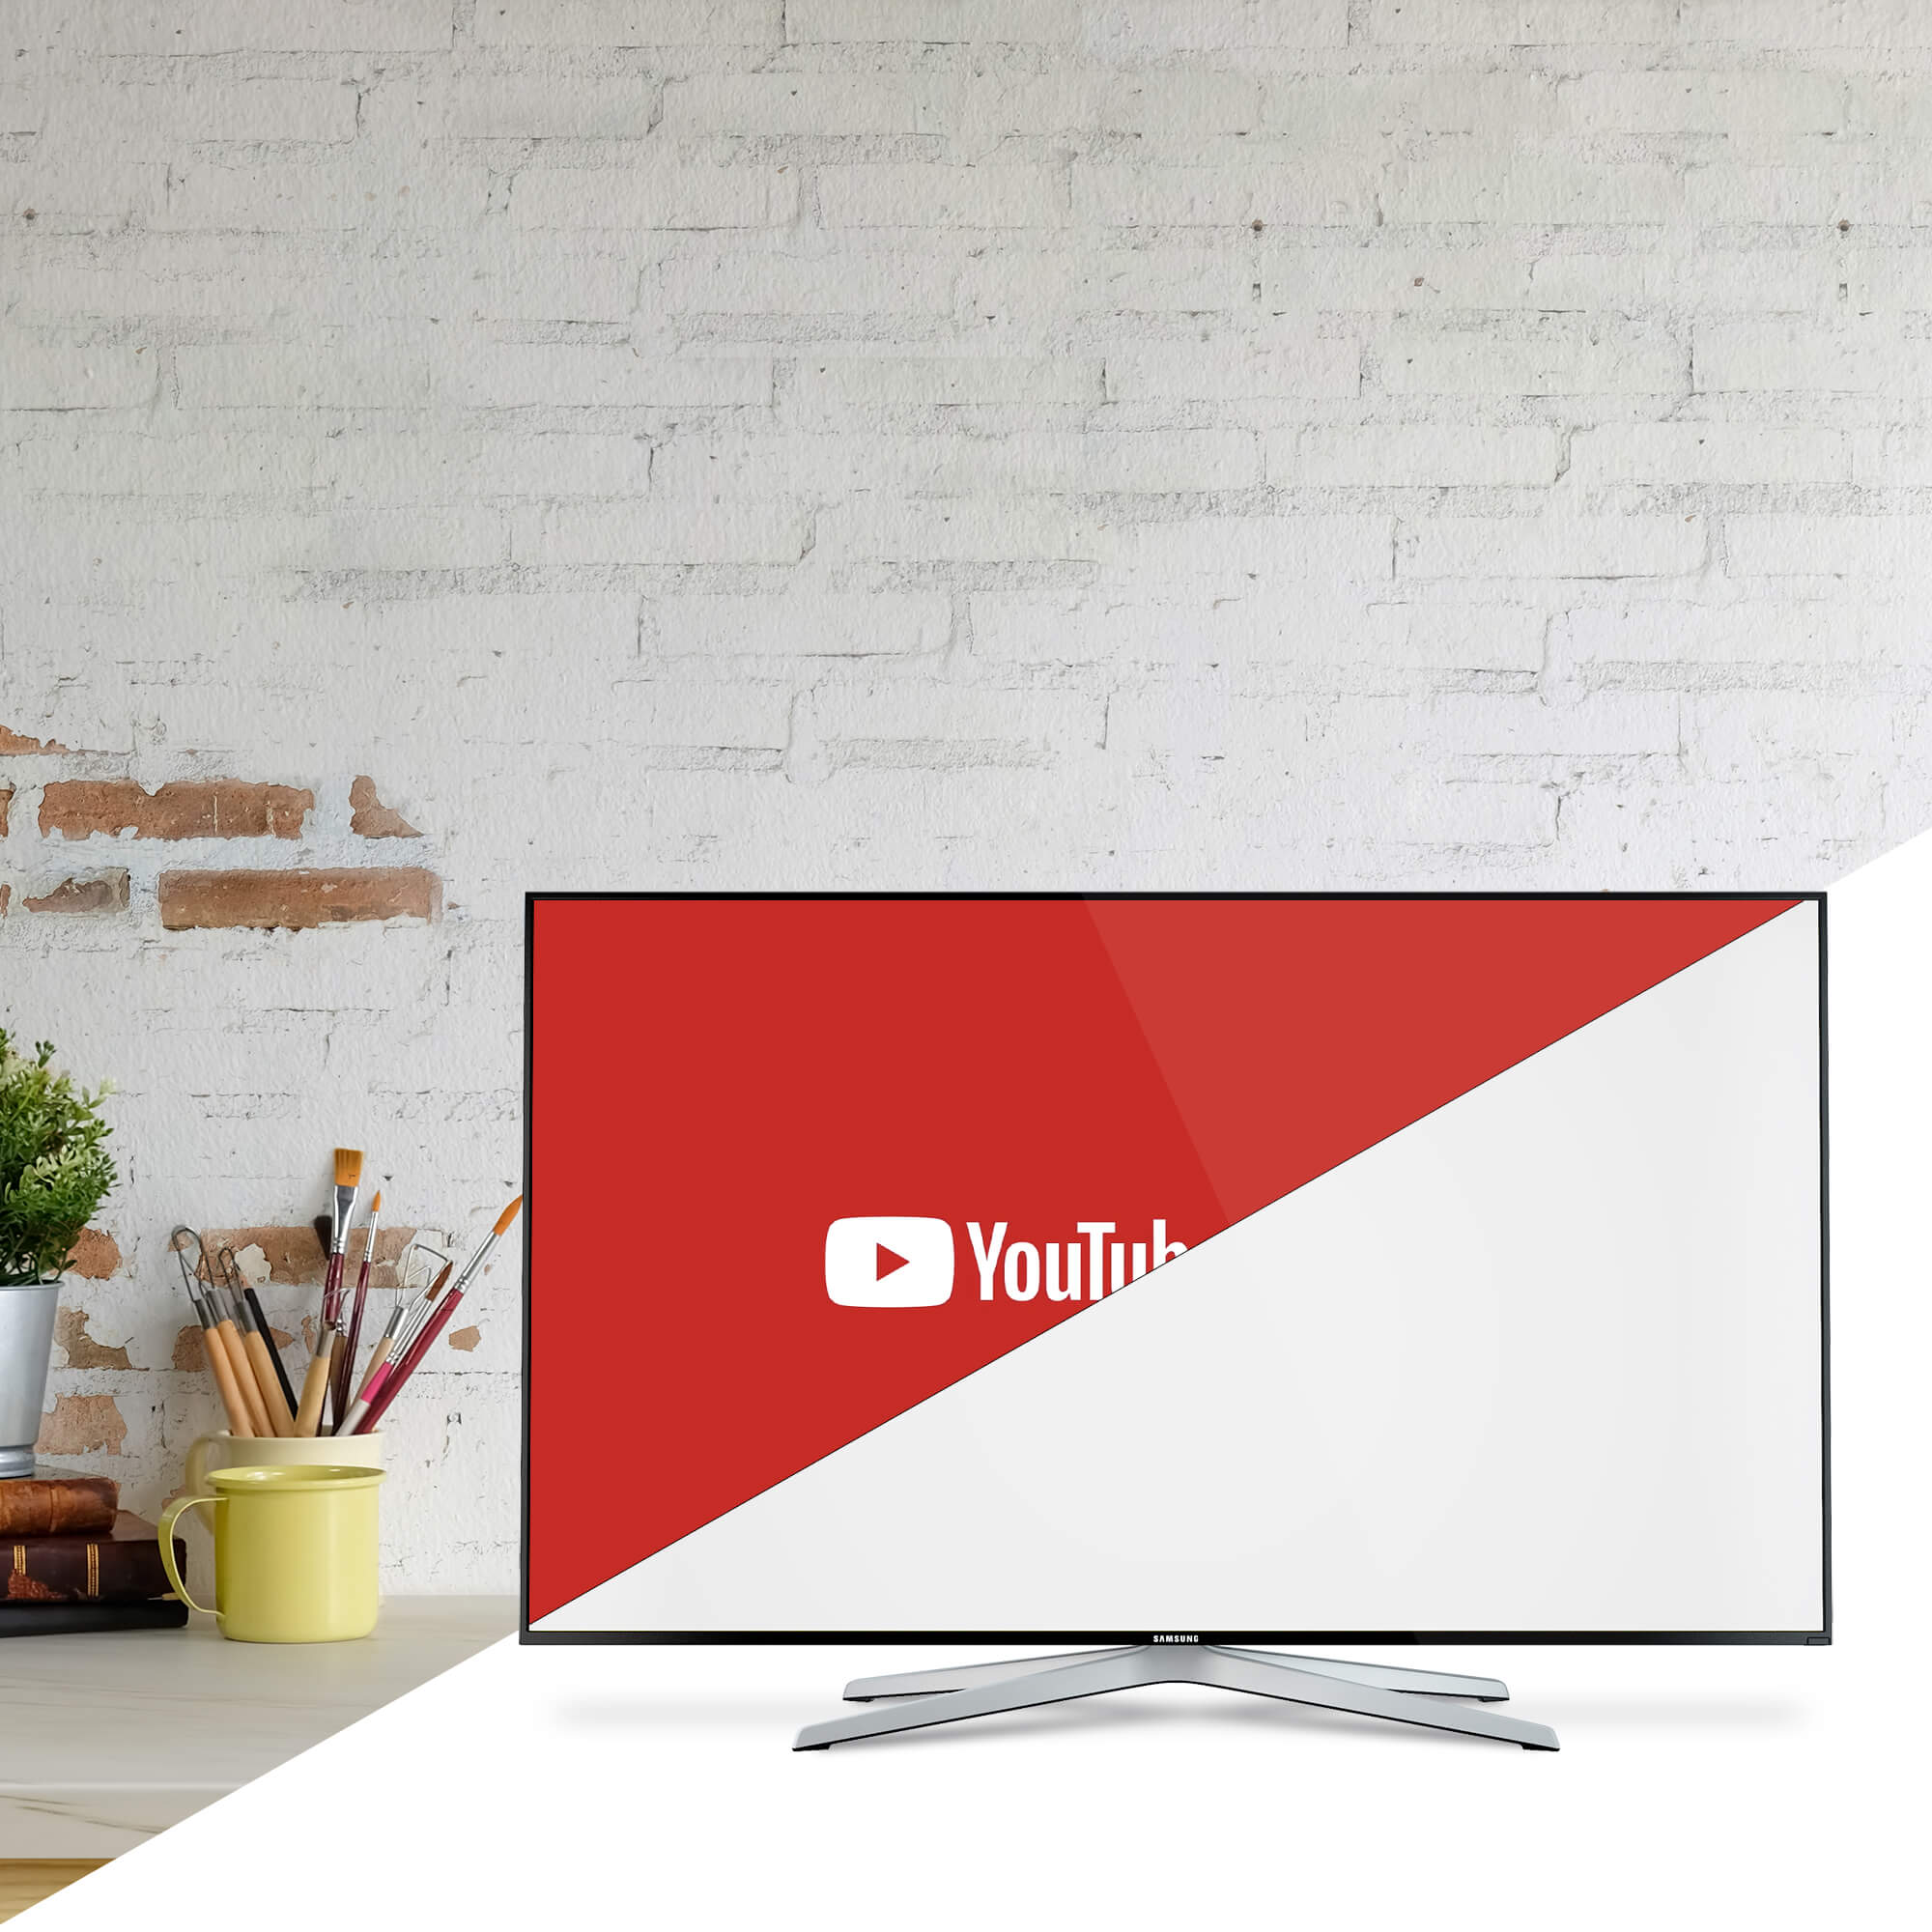 Editable Free YouTube Page Mockup PSD Template